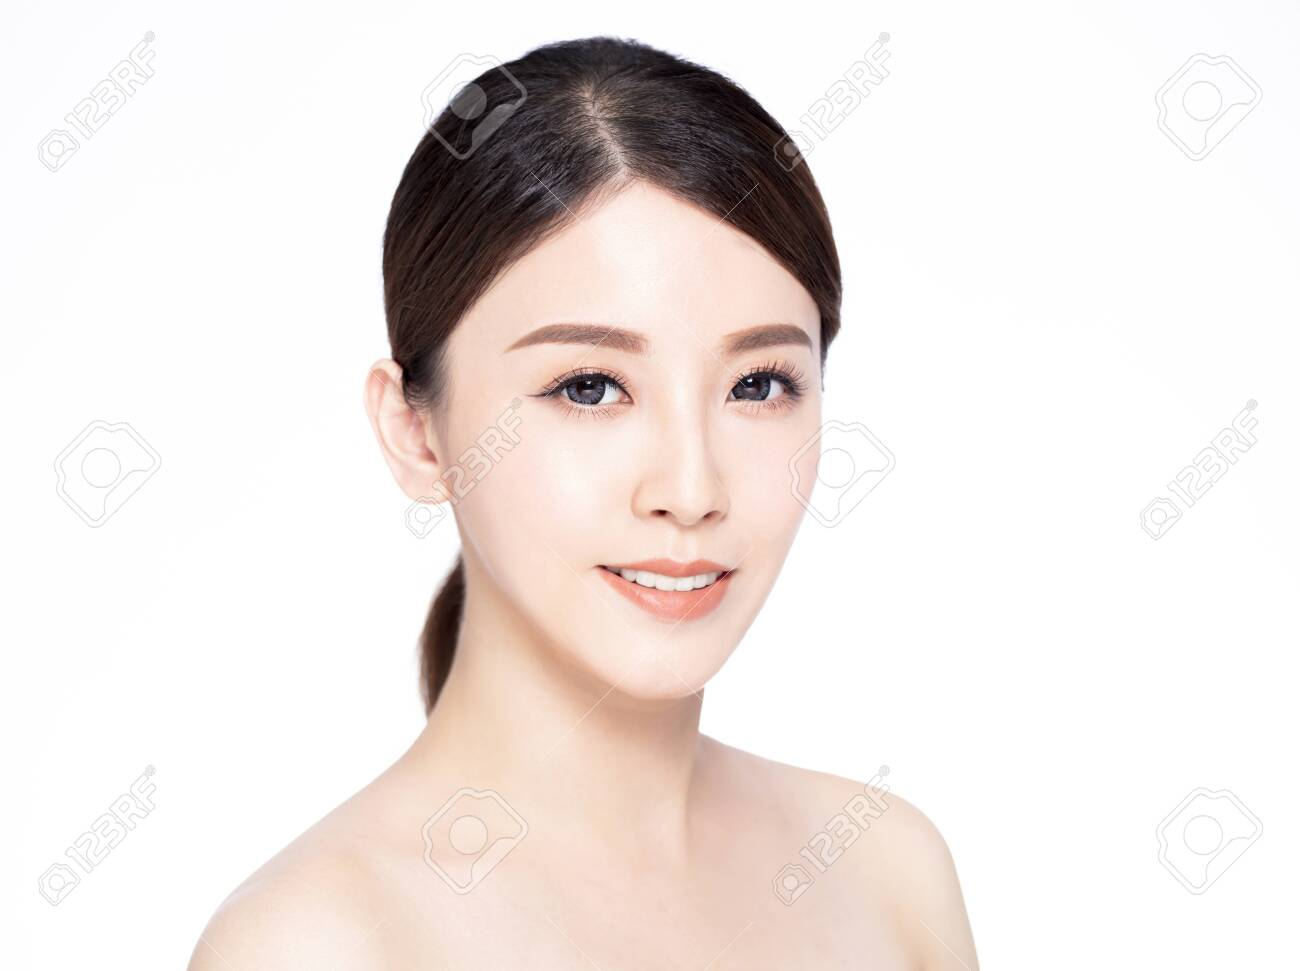 closeup young beauty face with clean fresh skin - 147129661